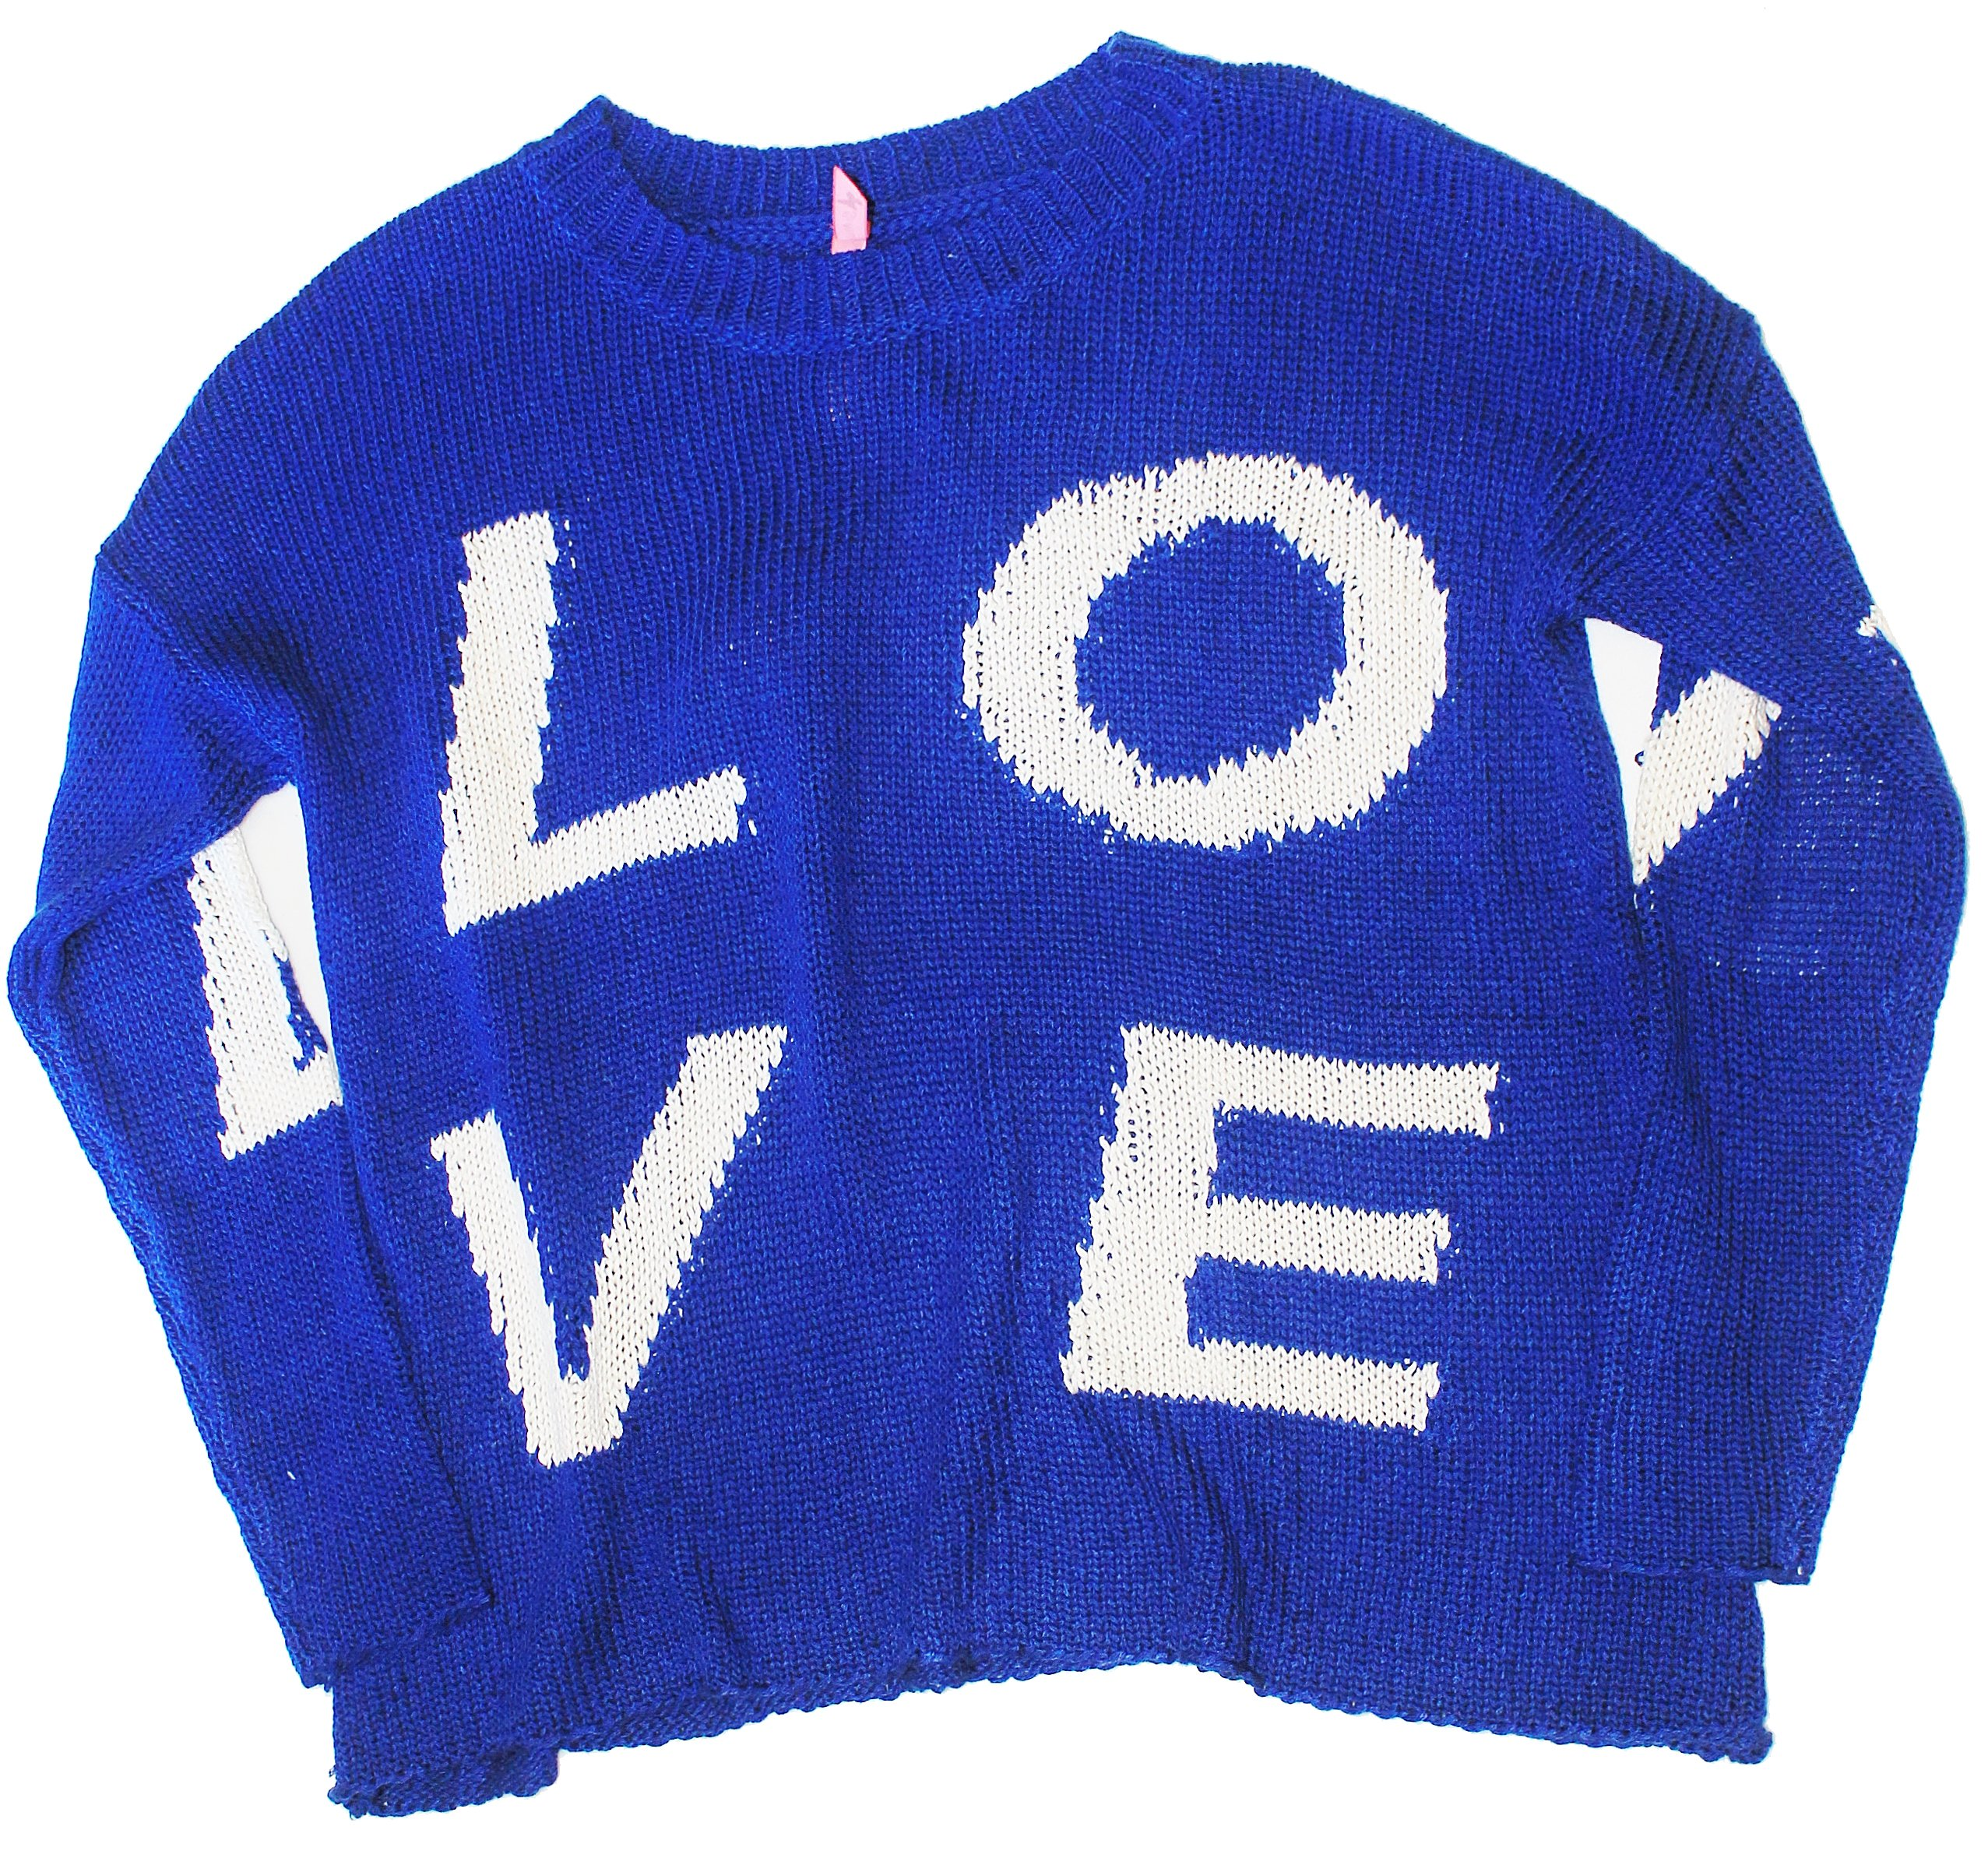 Girls So Nikki Love Sweater Size Small by SO NIKKI (Image #1)